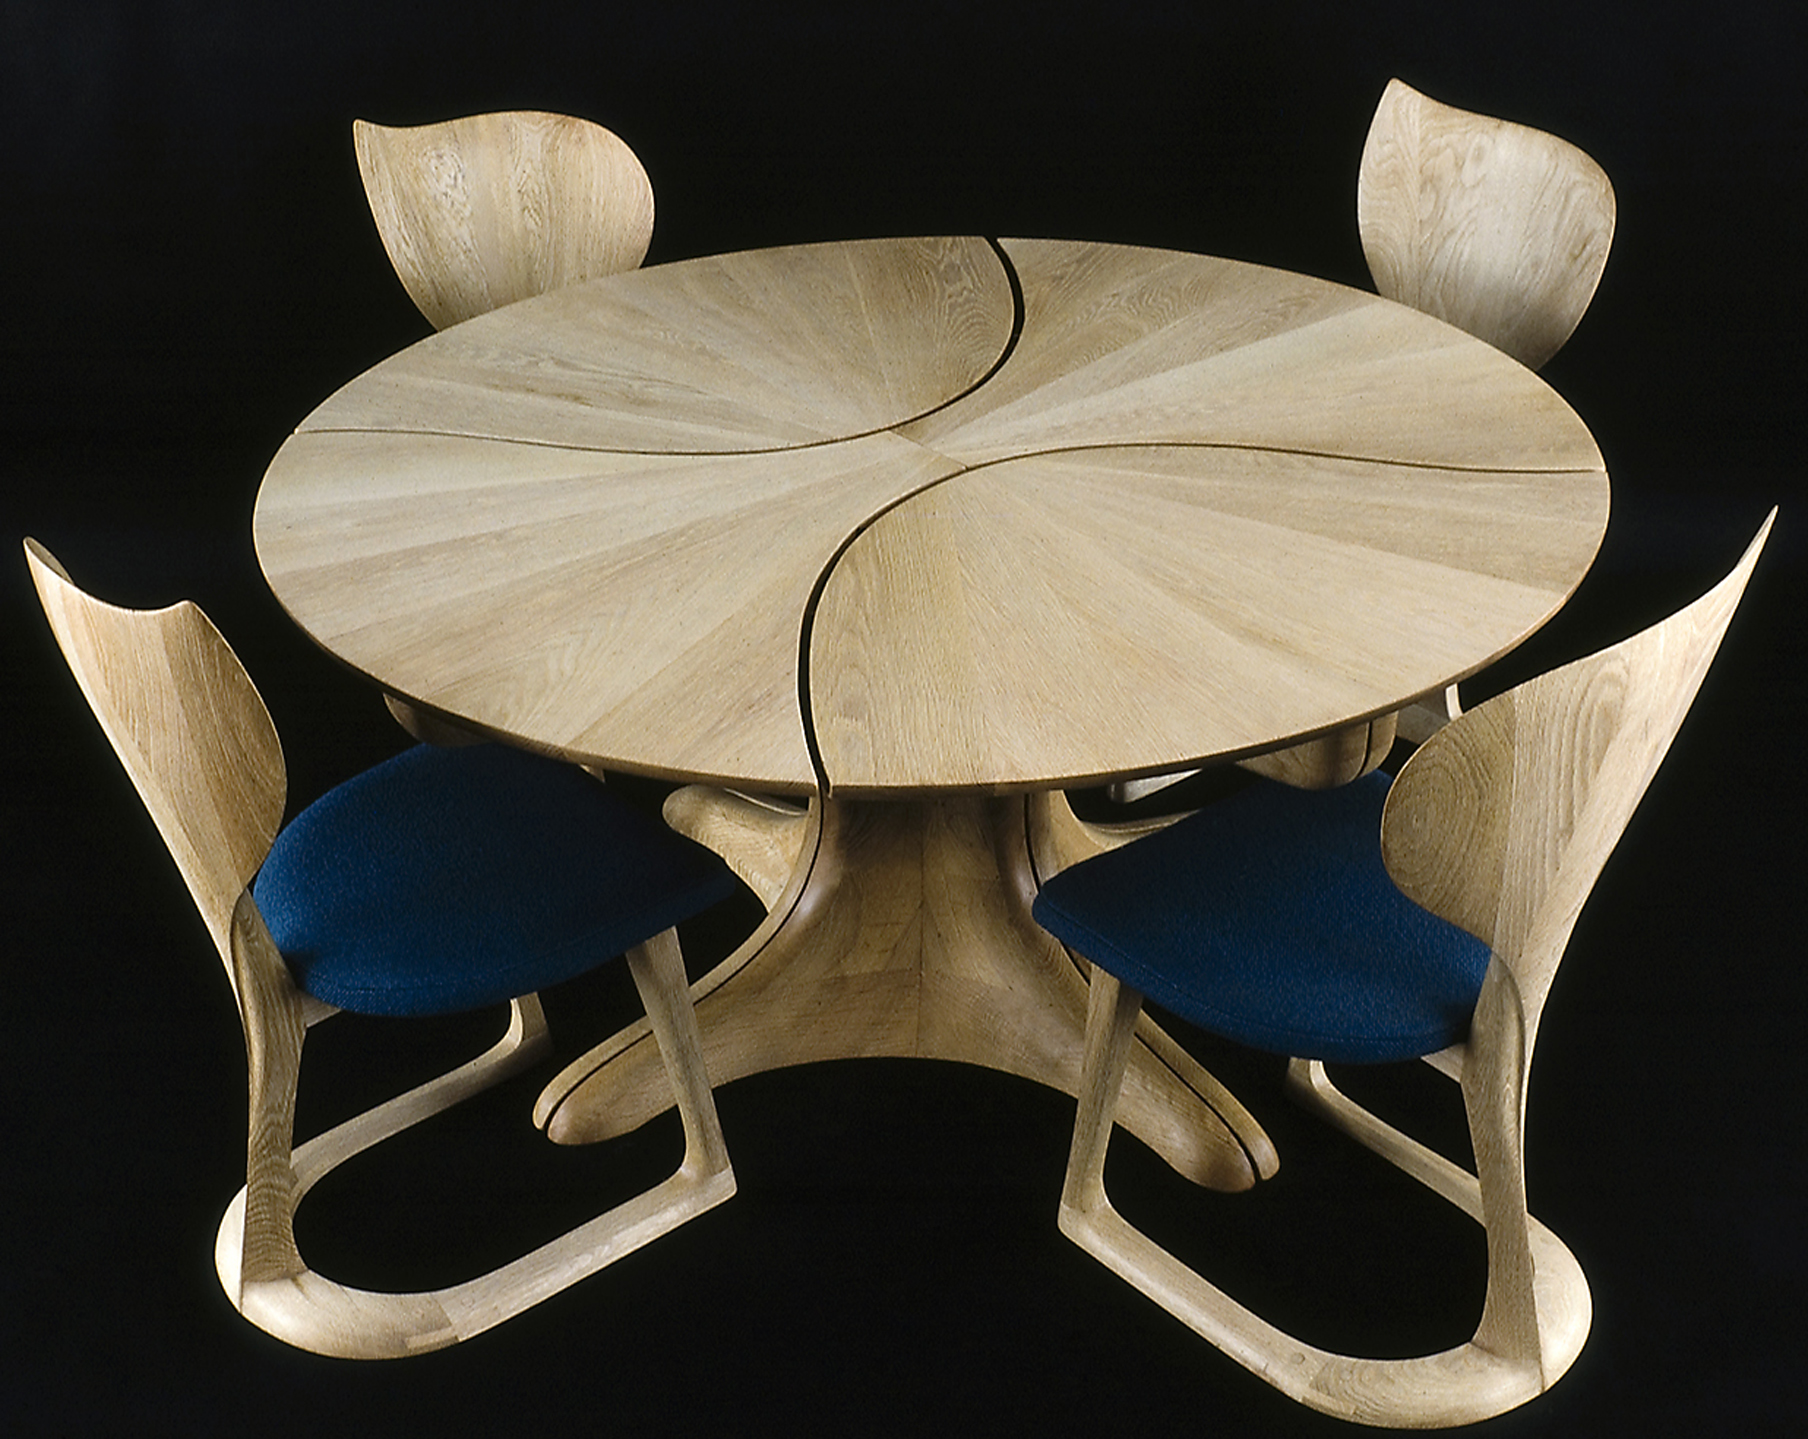 Bespoke Global Product Detail Lily Pad Table and Chairs II